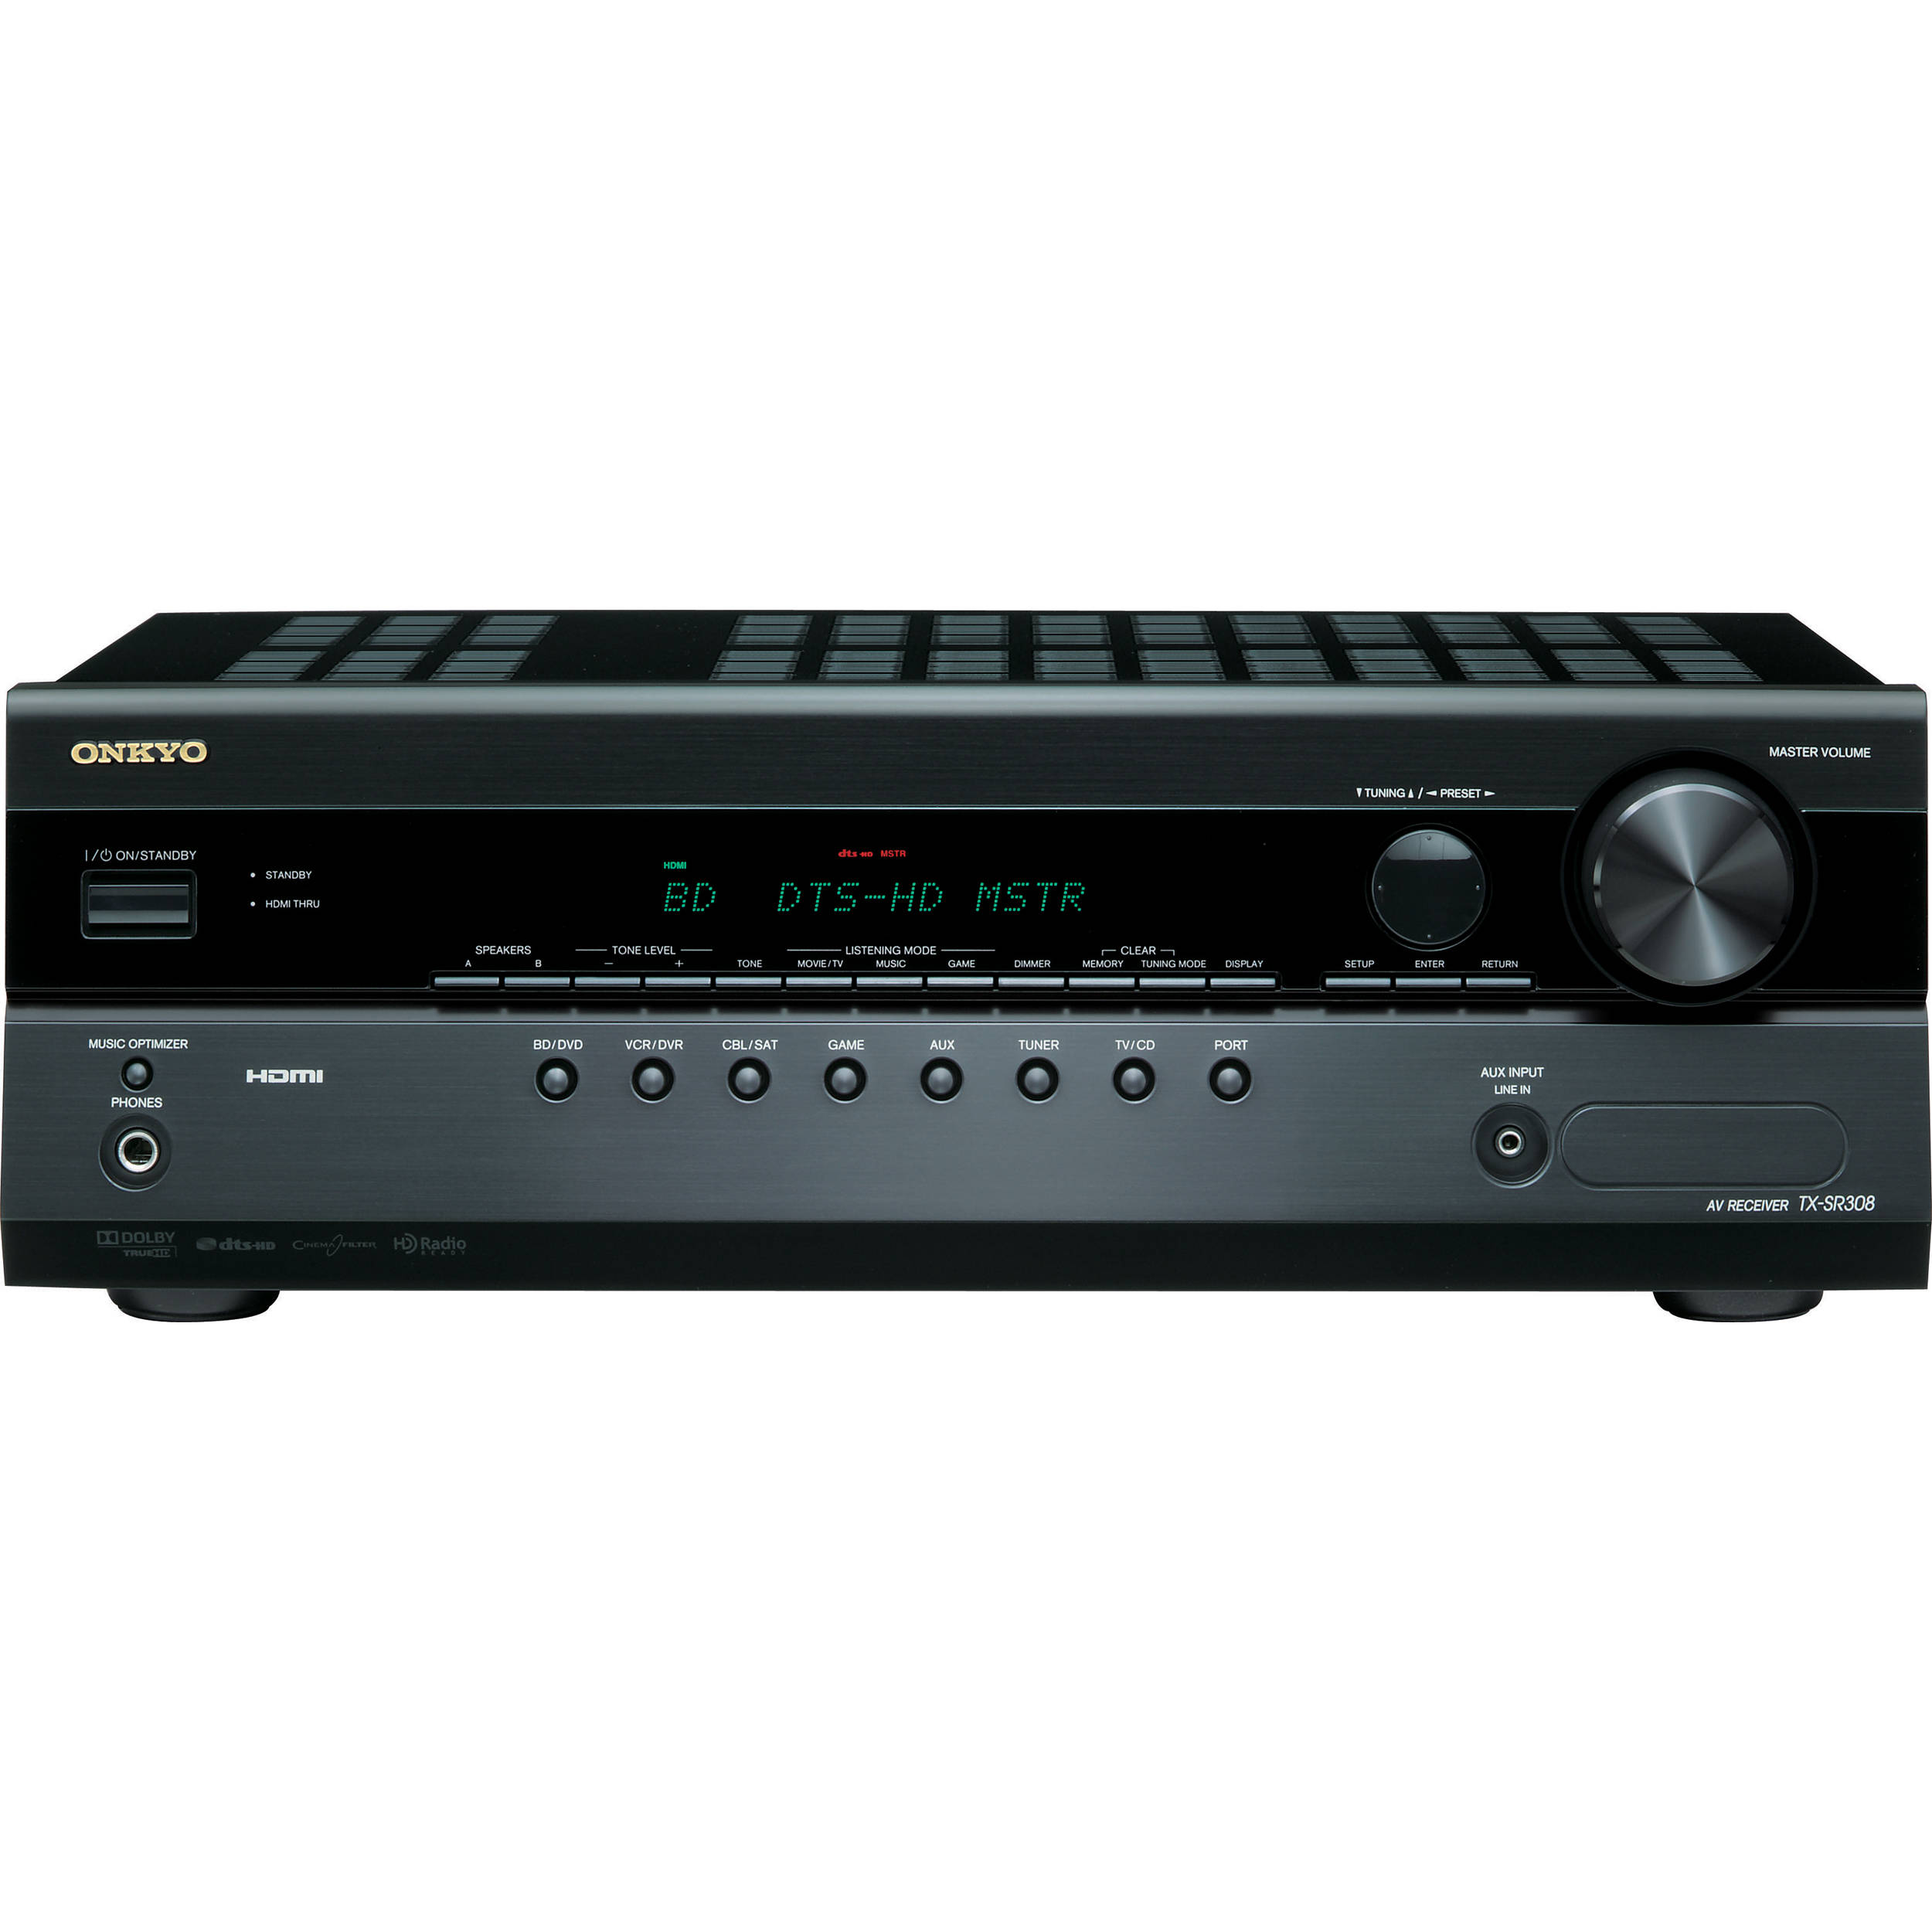 Onkyo TX-SR308 5 1 Channel A/V Home Theater Receiver